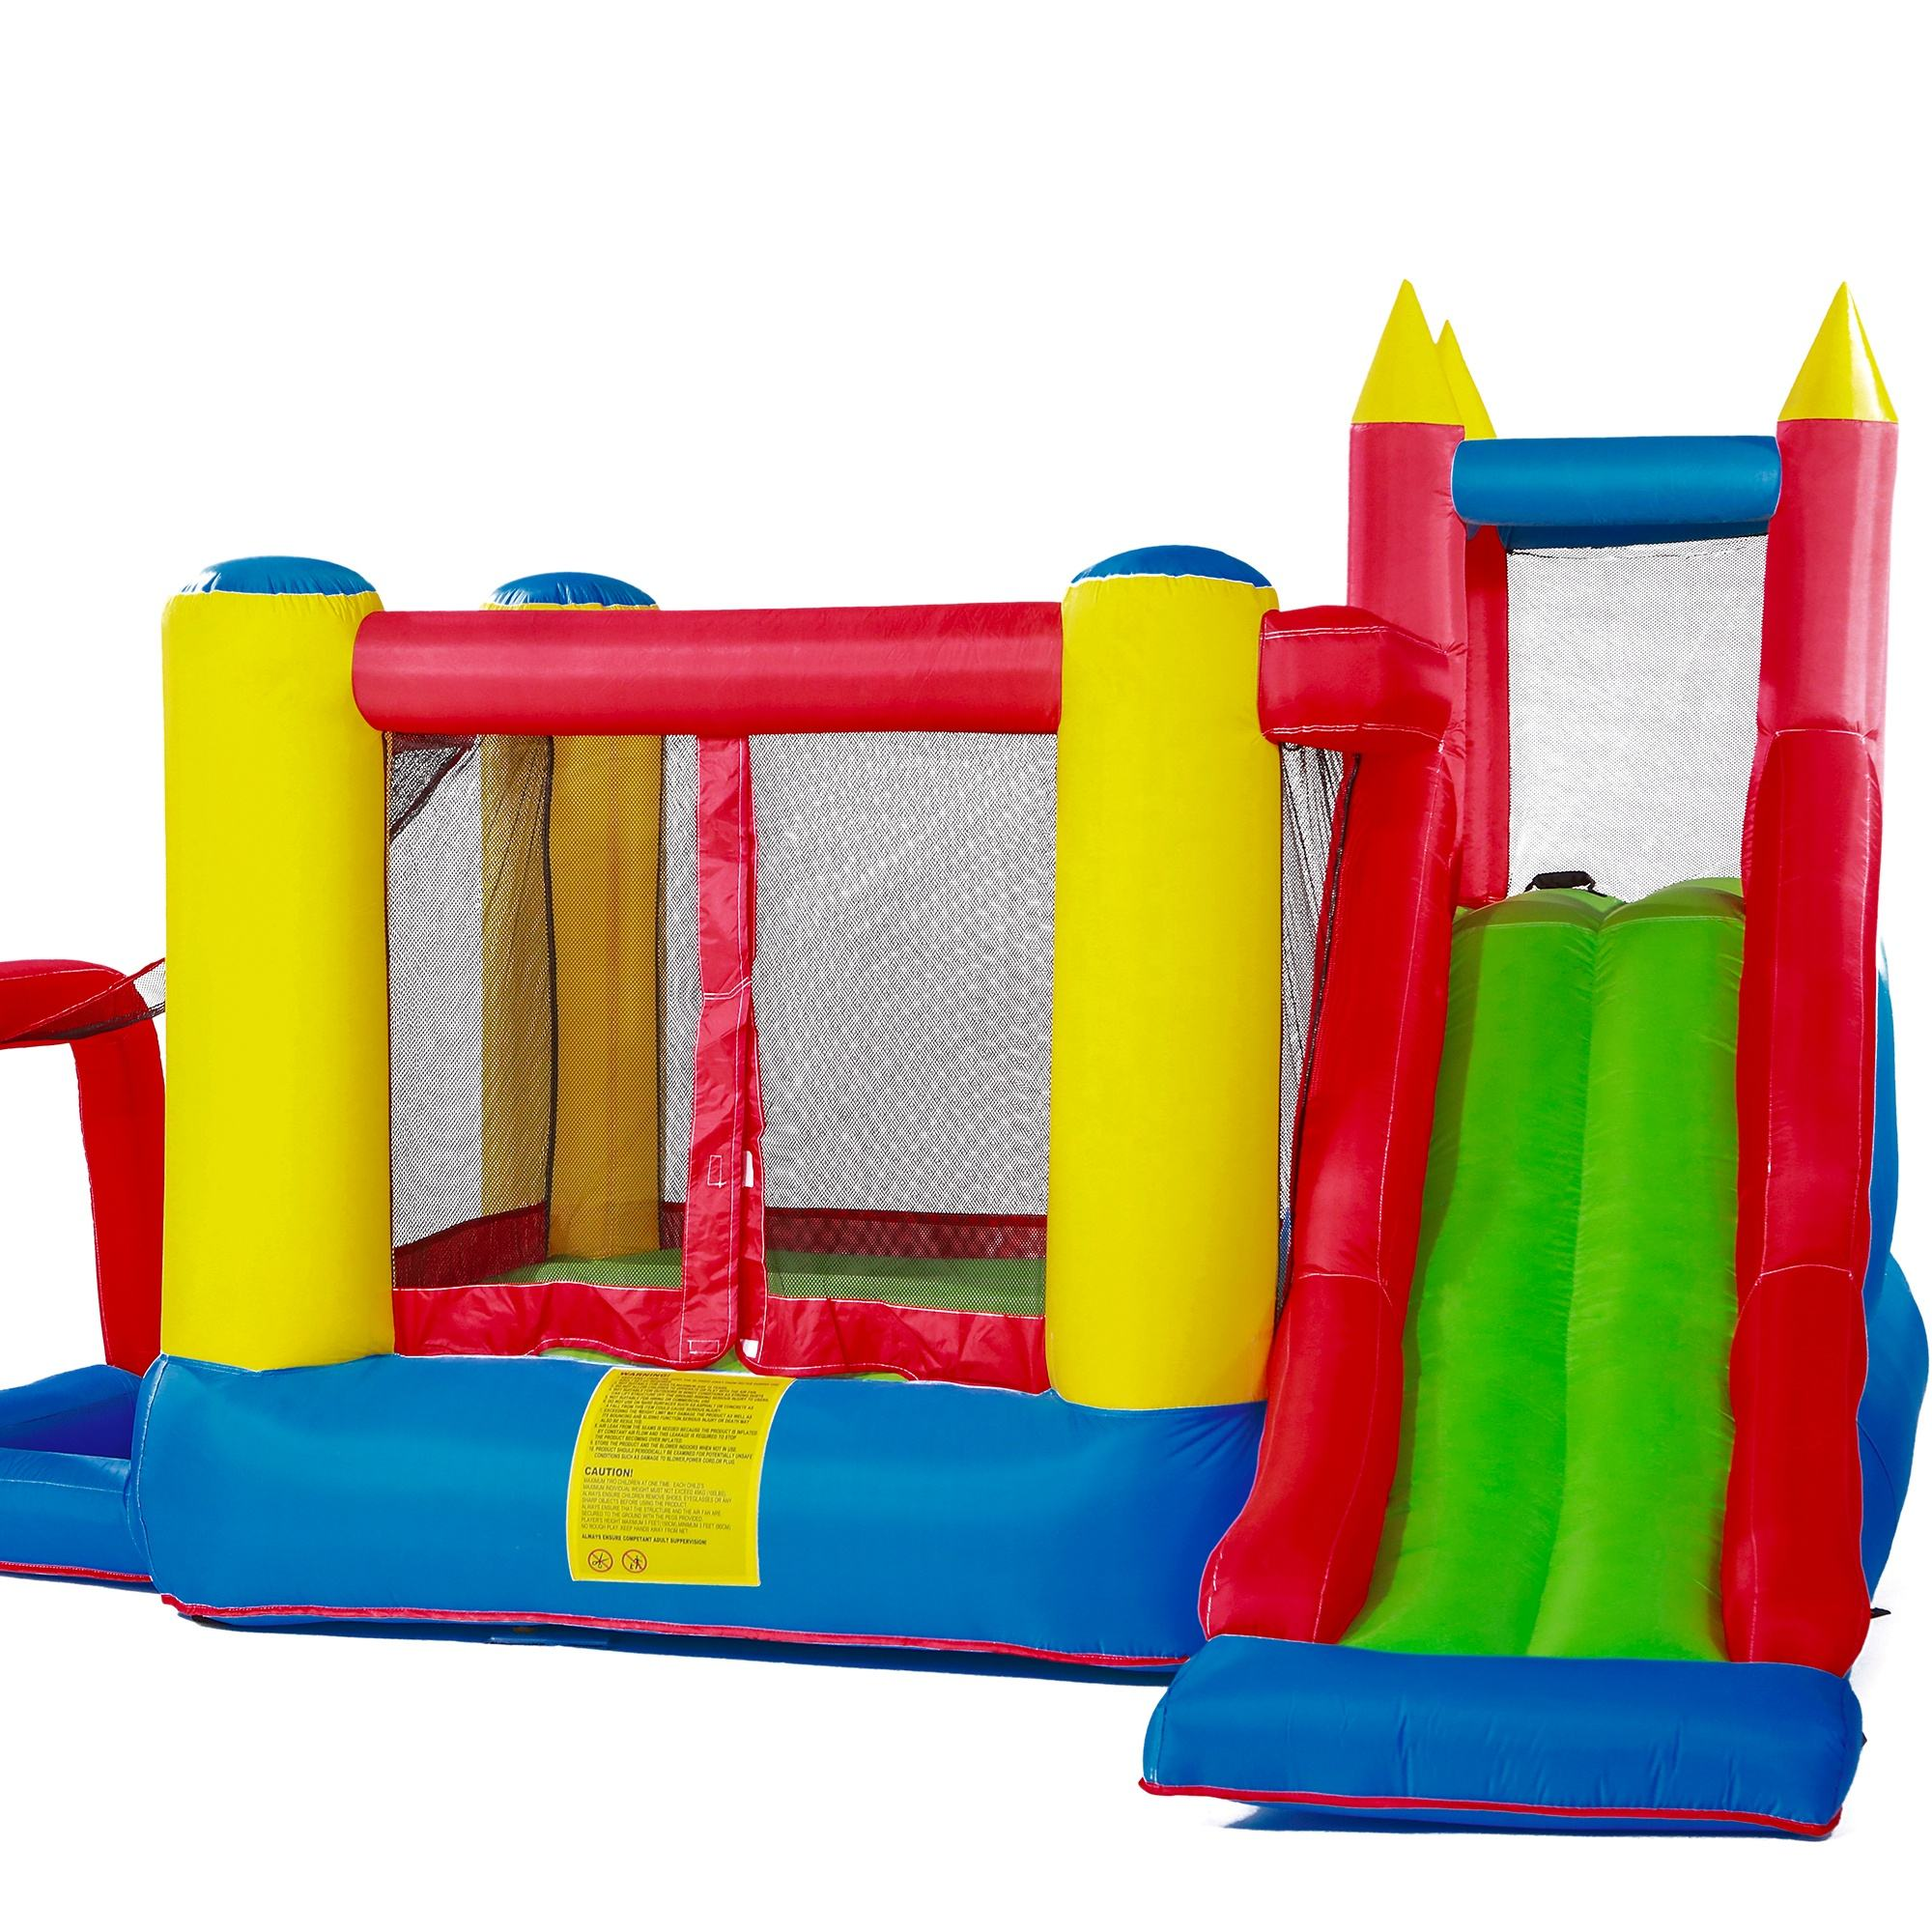 2019 Hot Inflatable Castle, Playing Castle Inflatable Bouncer, Inflatable Combo Inflatable Jumping Toy